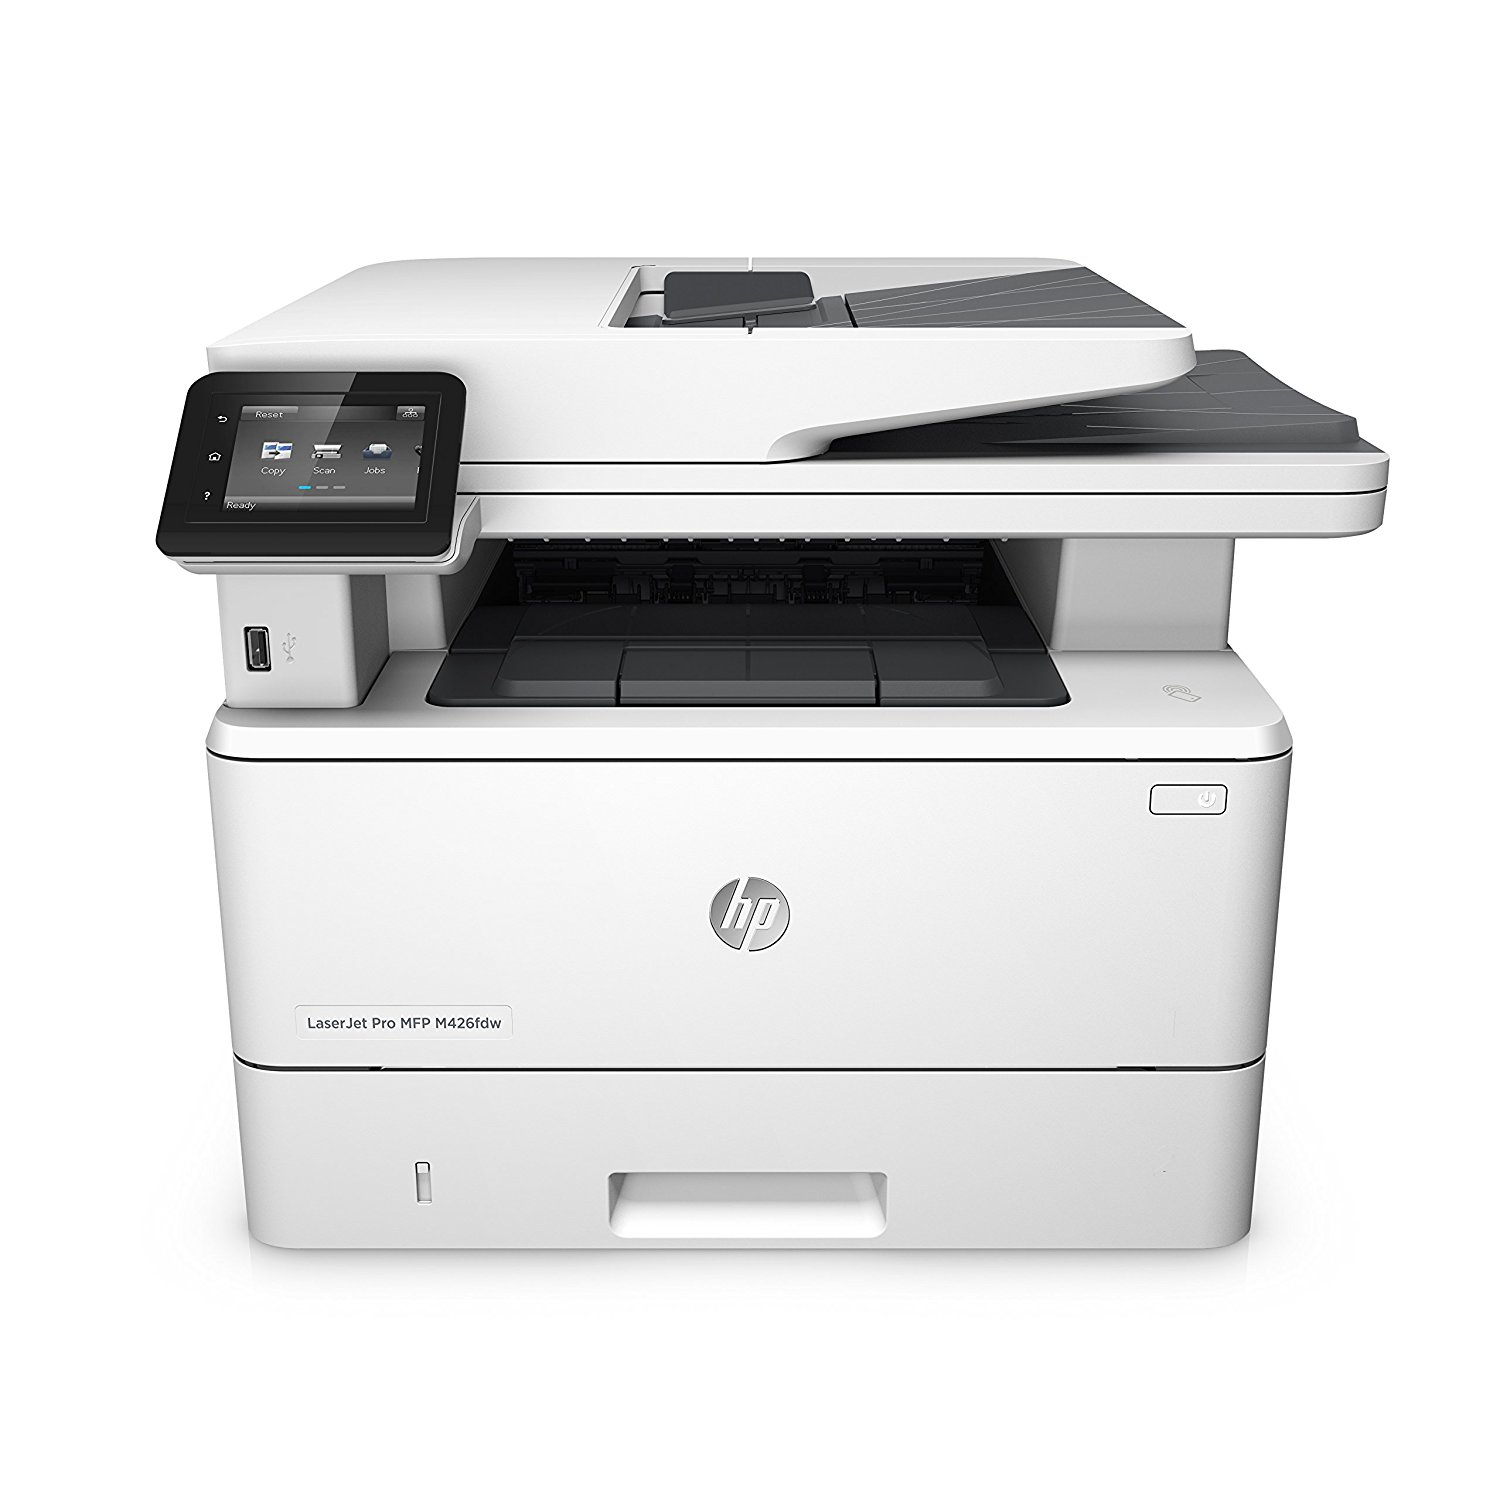 HP LaserJet Pro M277dw Wireless All-in-One Color Printer With Auto-On/Off Energy-Saving Technology